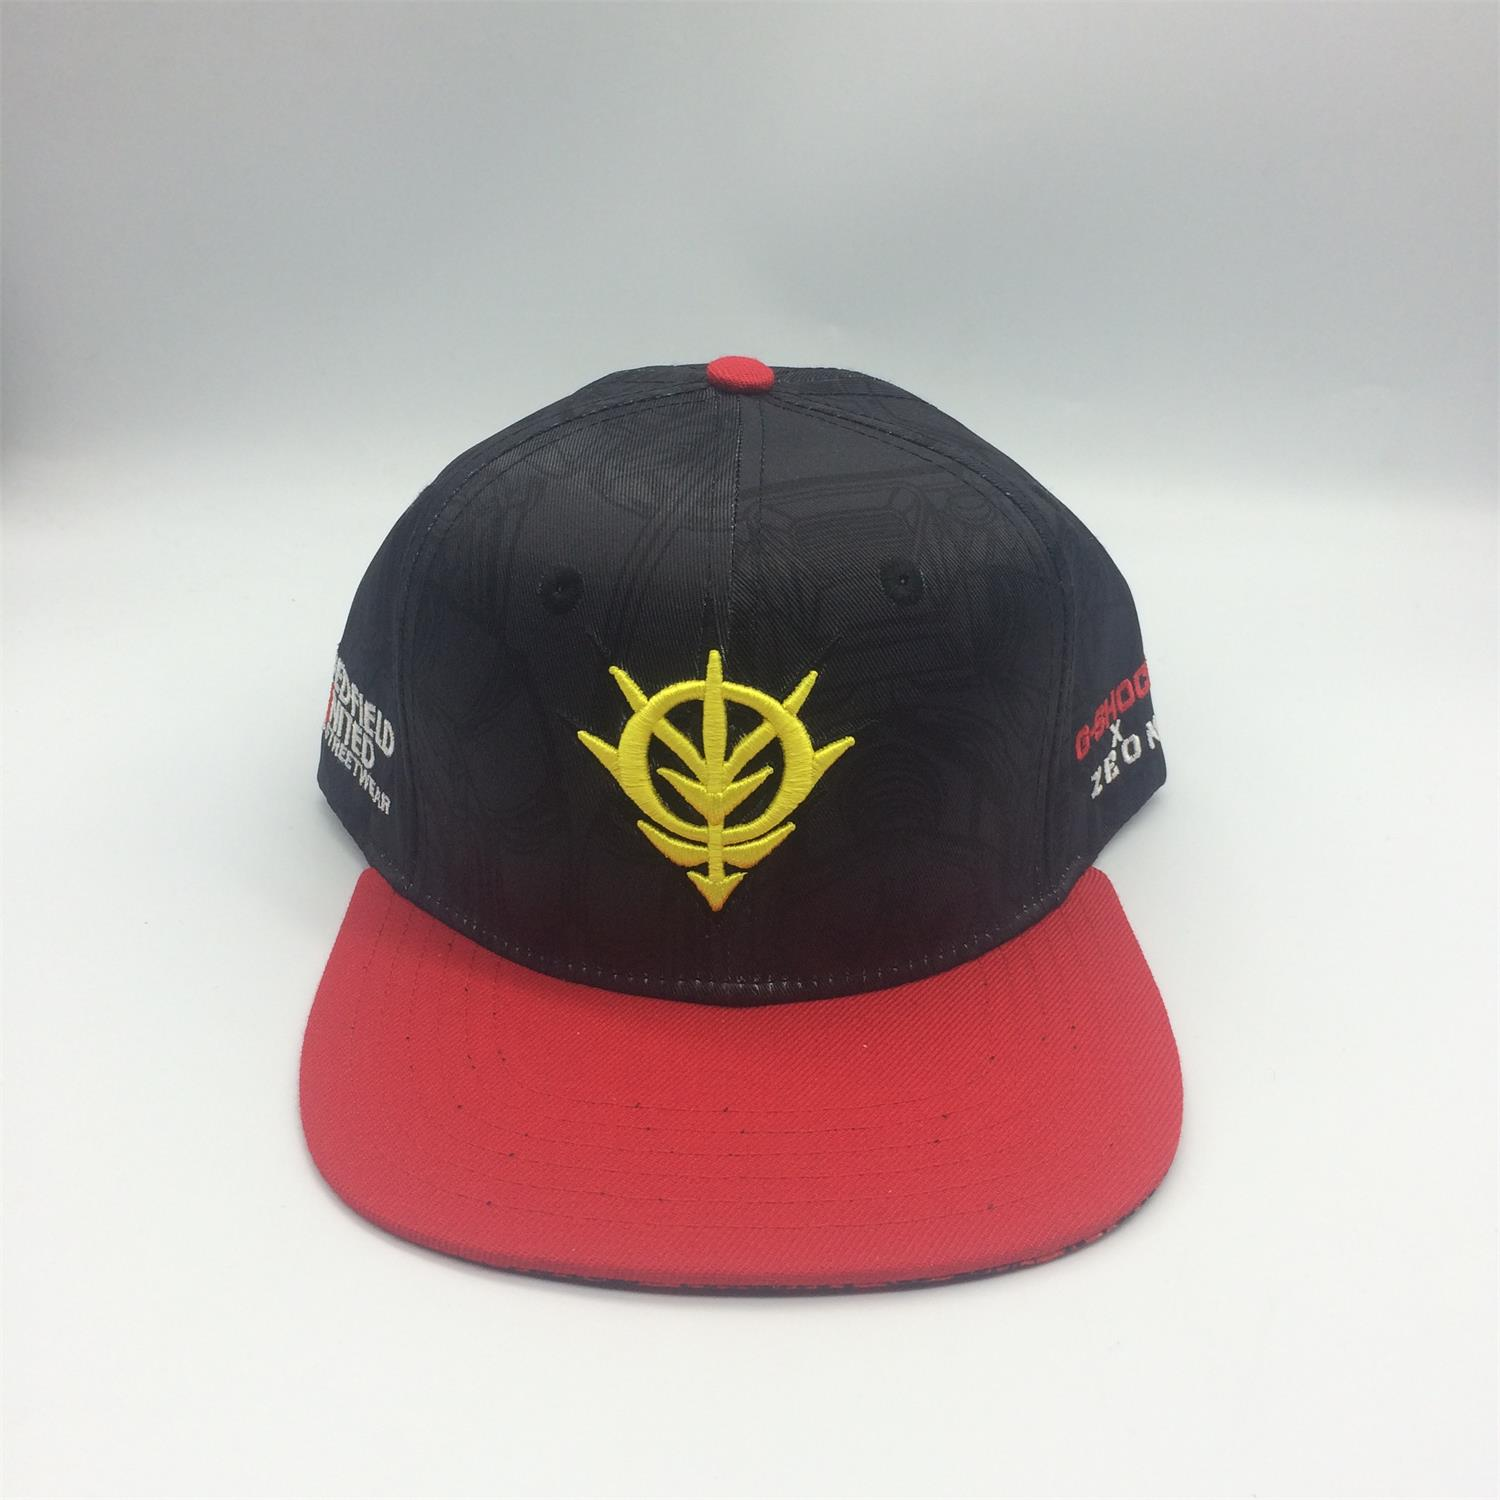 Professional OEM fashion 3d embroidery wholesale baseball cap hats and snapback cap custom logo